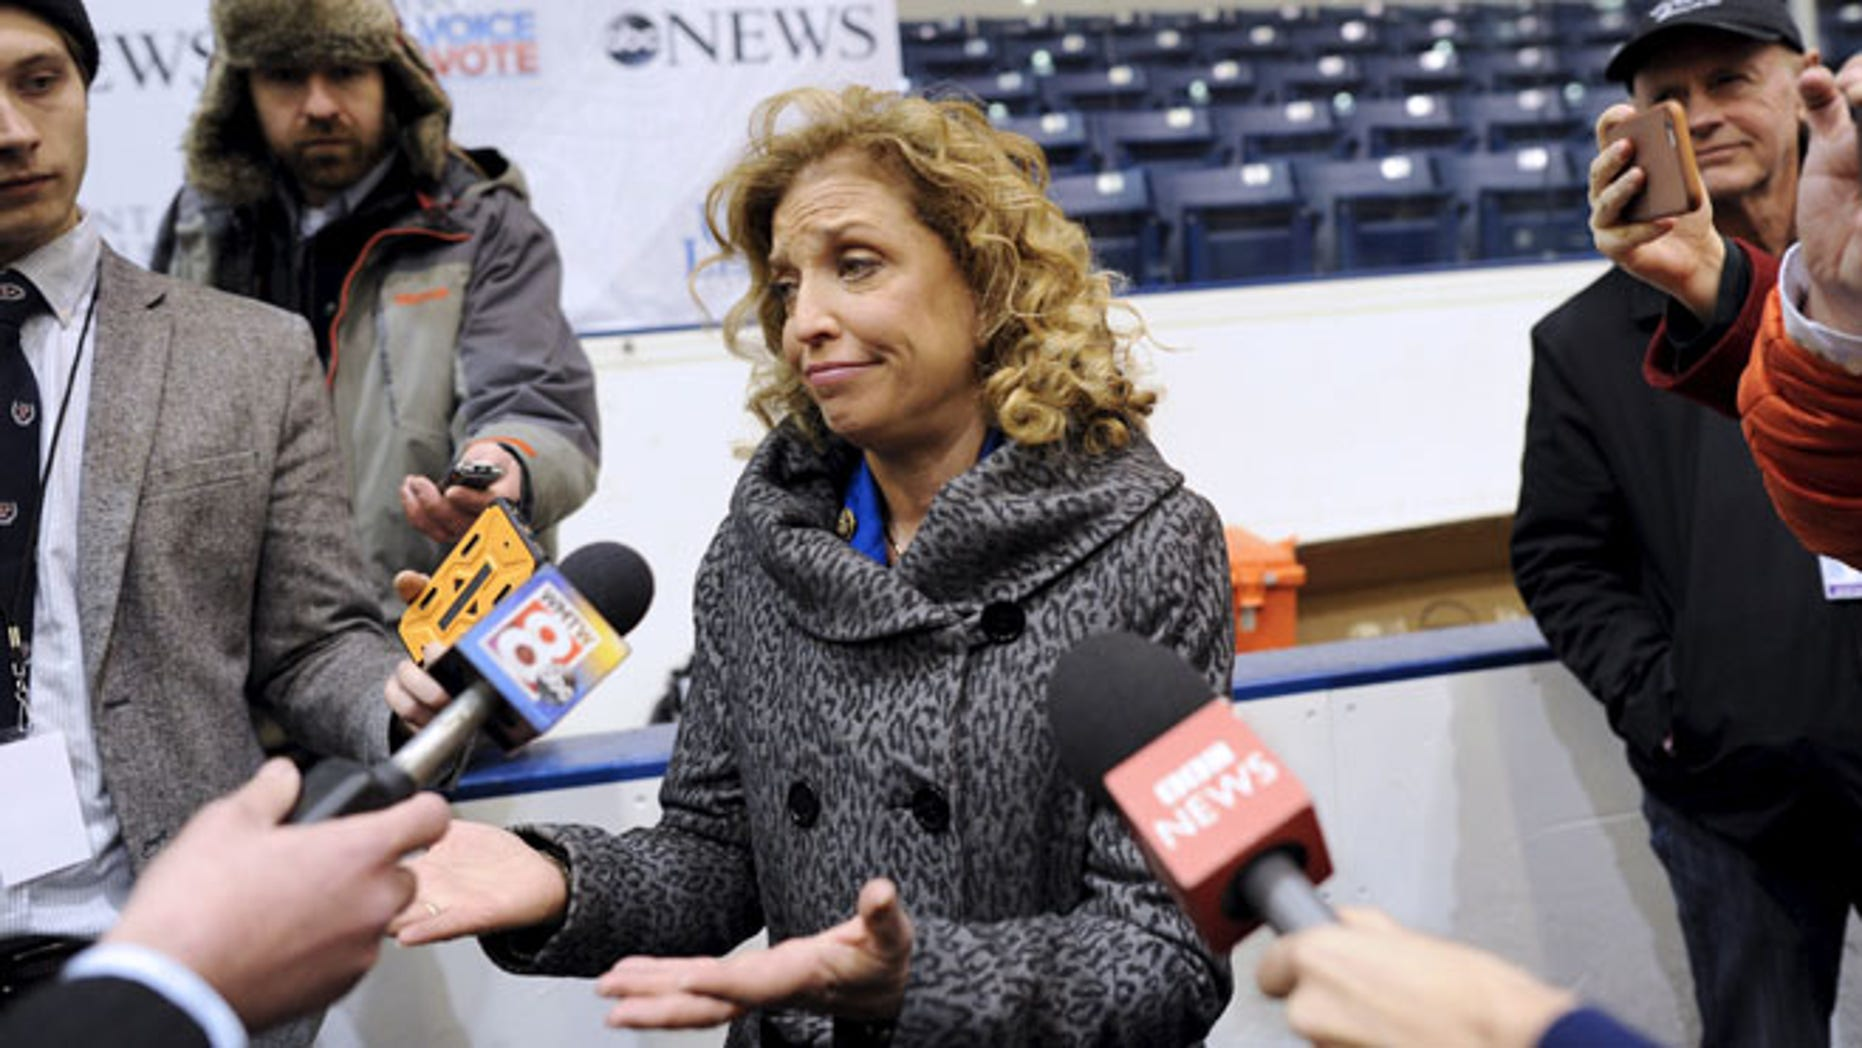 FILE:  Dec. 19, 2015: Democratic National Committee chair Debbie Wasserman Schultz at debate at Saint Anselm College in Manchester, N.H. (REUTERS)